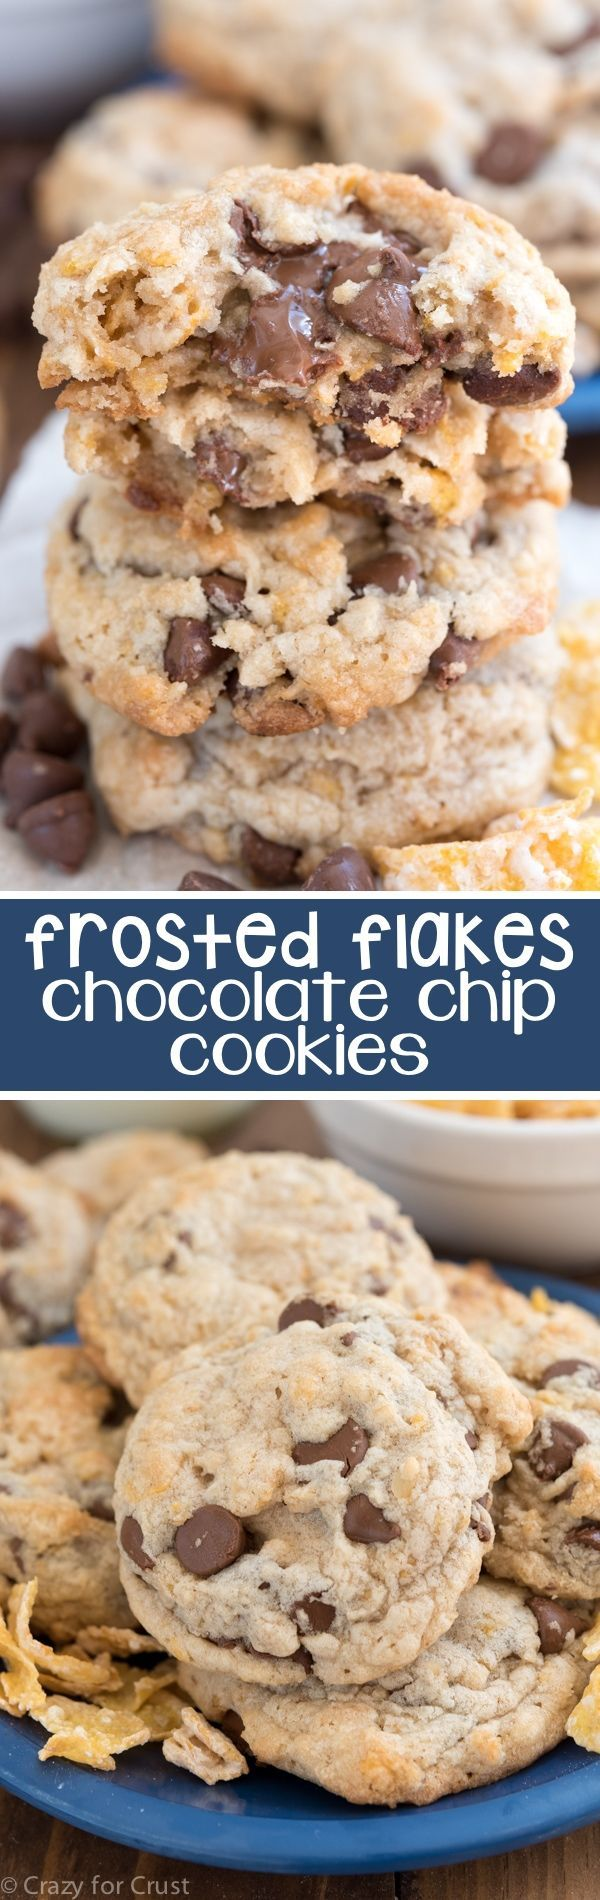 Frosted Flakes Cookies will become your favorite cookie recipe ever! It's an easy chocolate chip cookie recipe filled with chocolate chips and Frosted Flakes cereal. The texture of these cookies can't be beat!